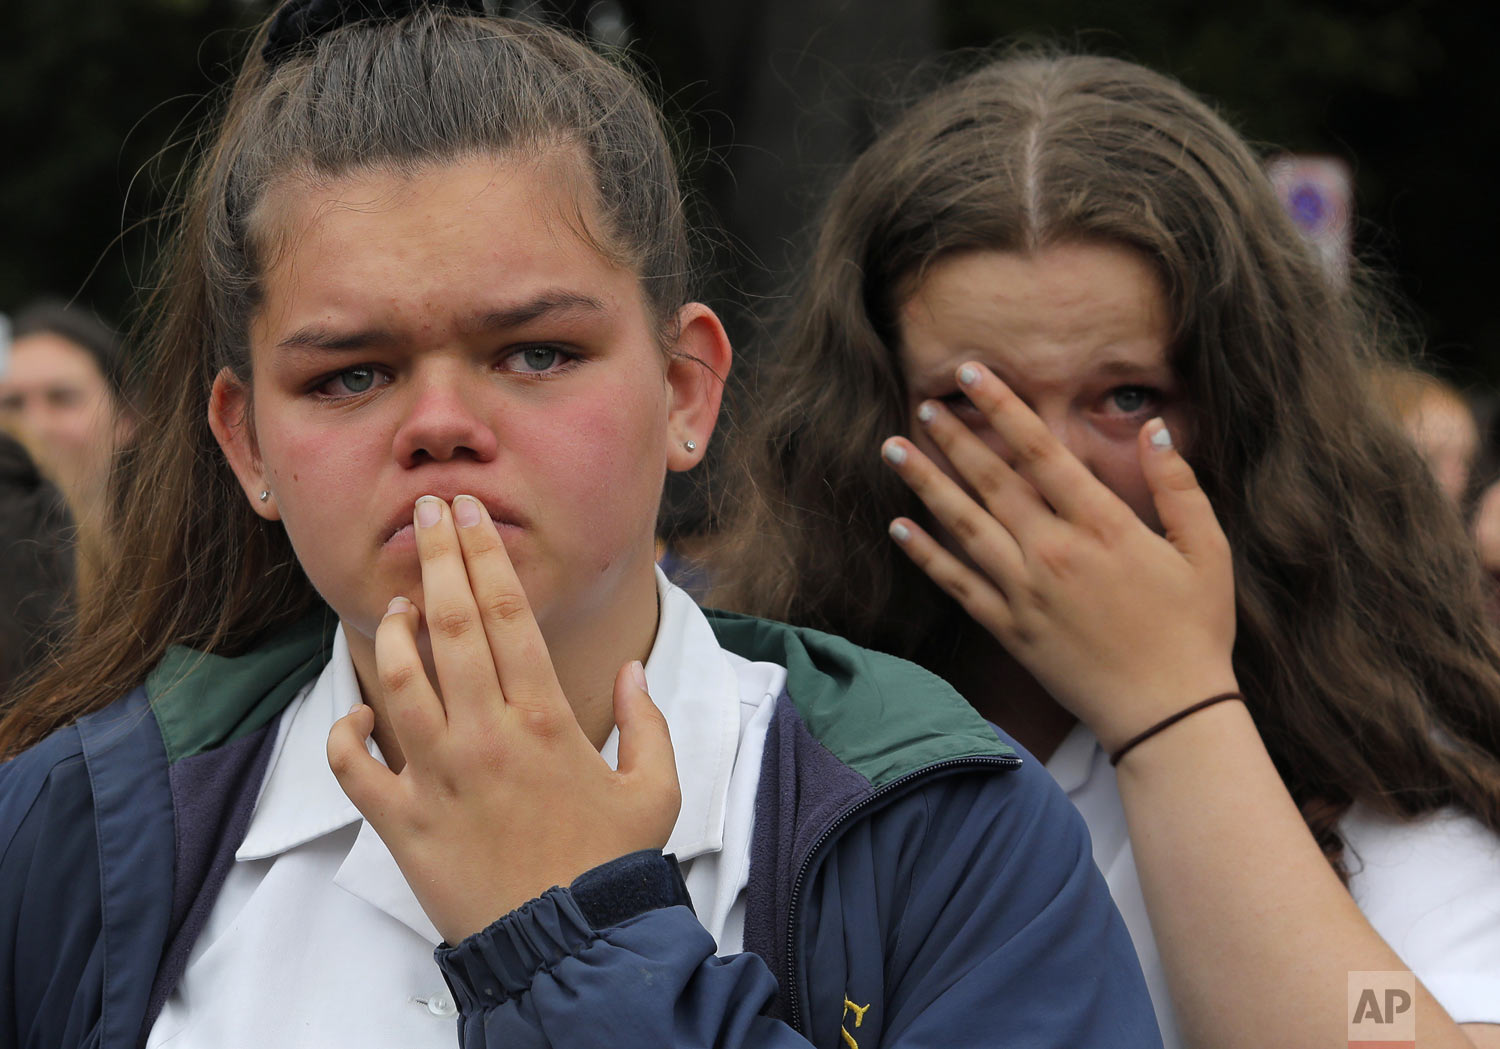 Students react as they gather for a vigil to commemorate victims of the shootings, outside the Al Noor mosque in Christchurch, New Zealand, Monday, March 18, 2019. (AP Photo/Vincent Yu)